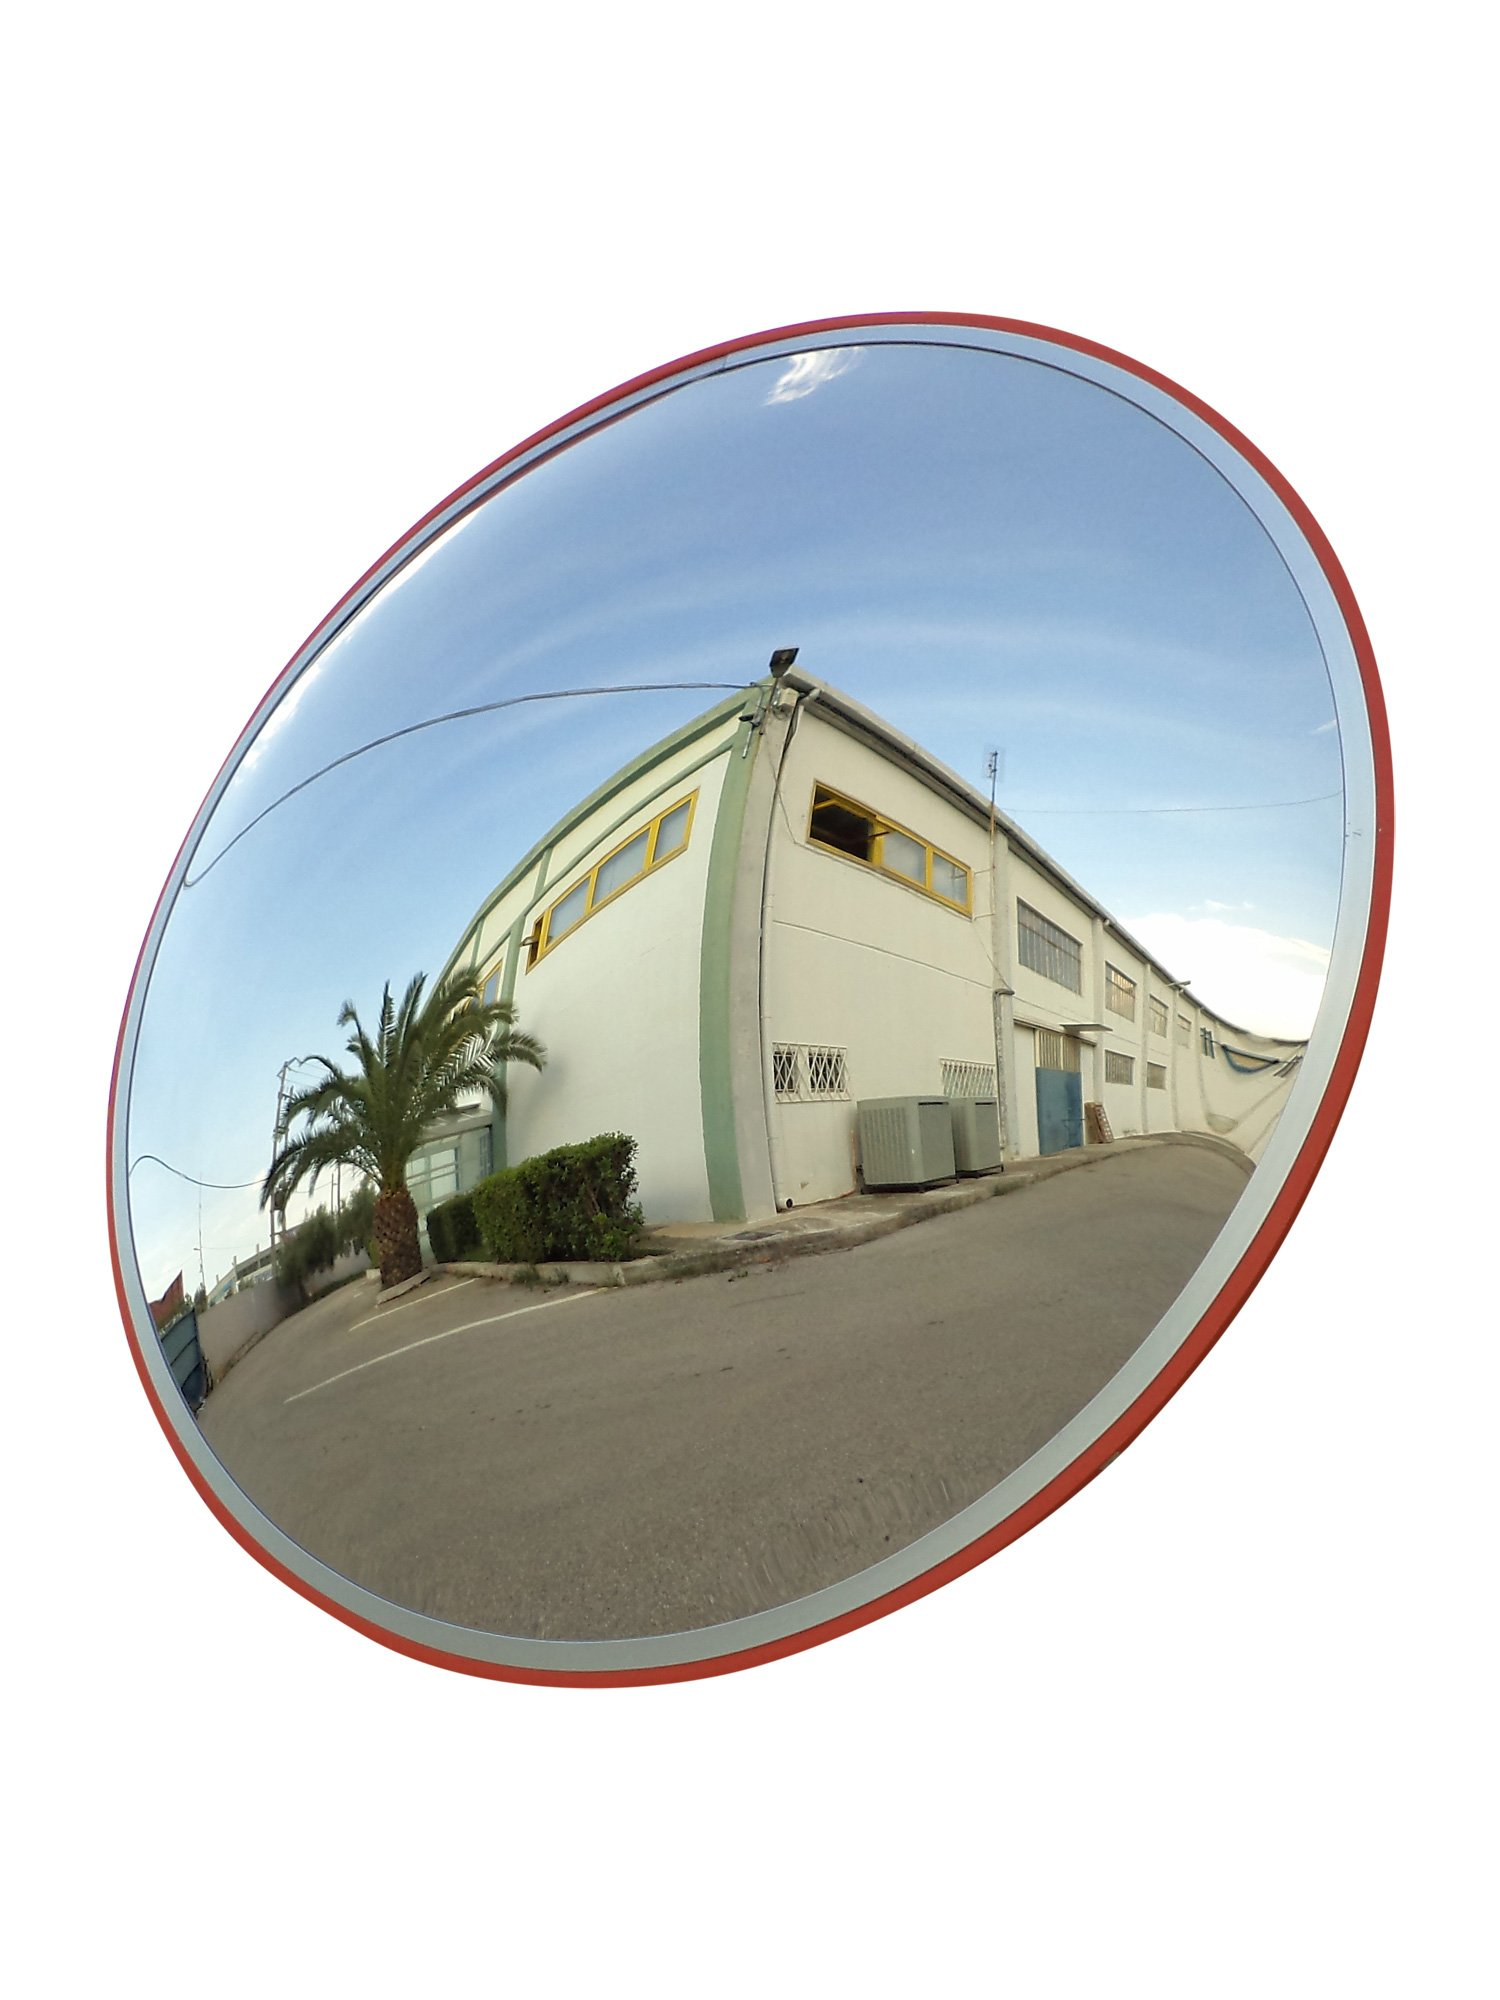 Convex Traffic Mirror 24'' for Driveway, Warehouse and Garage Safety or Store and Office Security, with Adjustable Wall Fixing Bracket to Eliminate Blind Spots and Corners Indoor and Outdoor